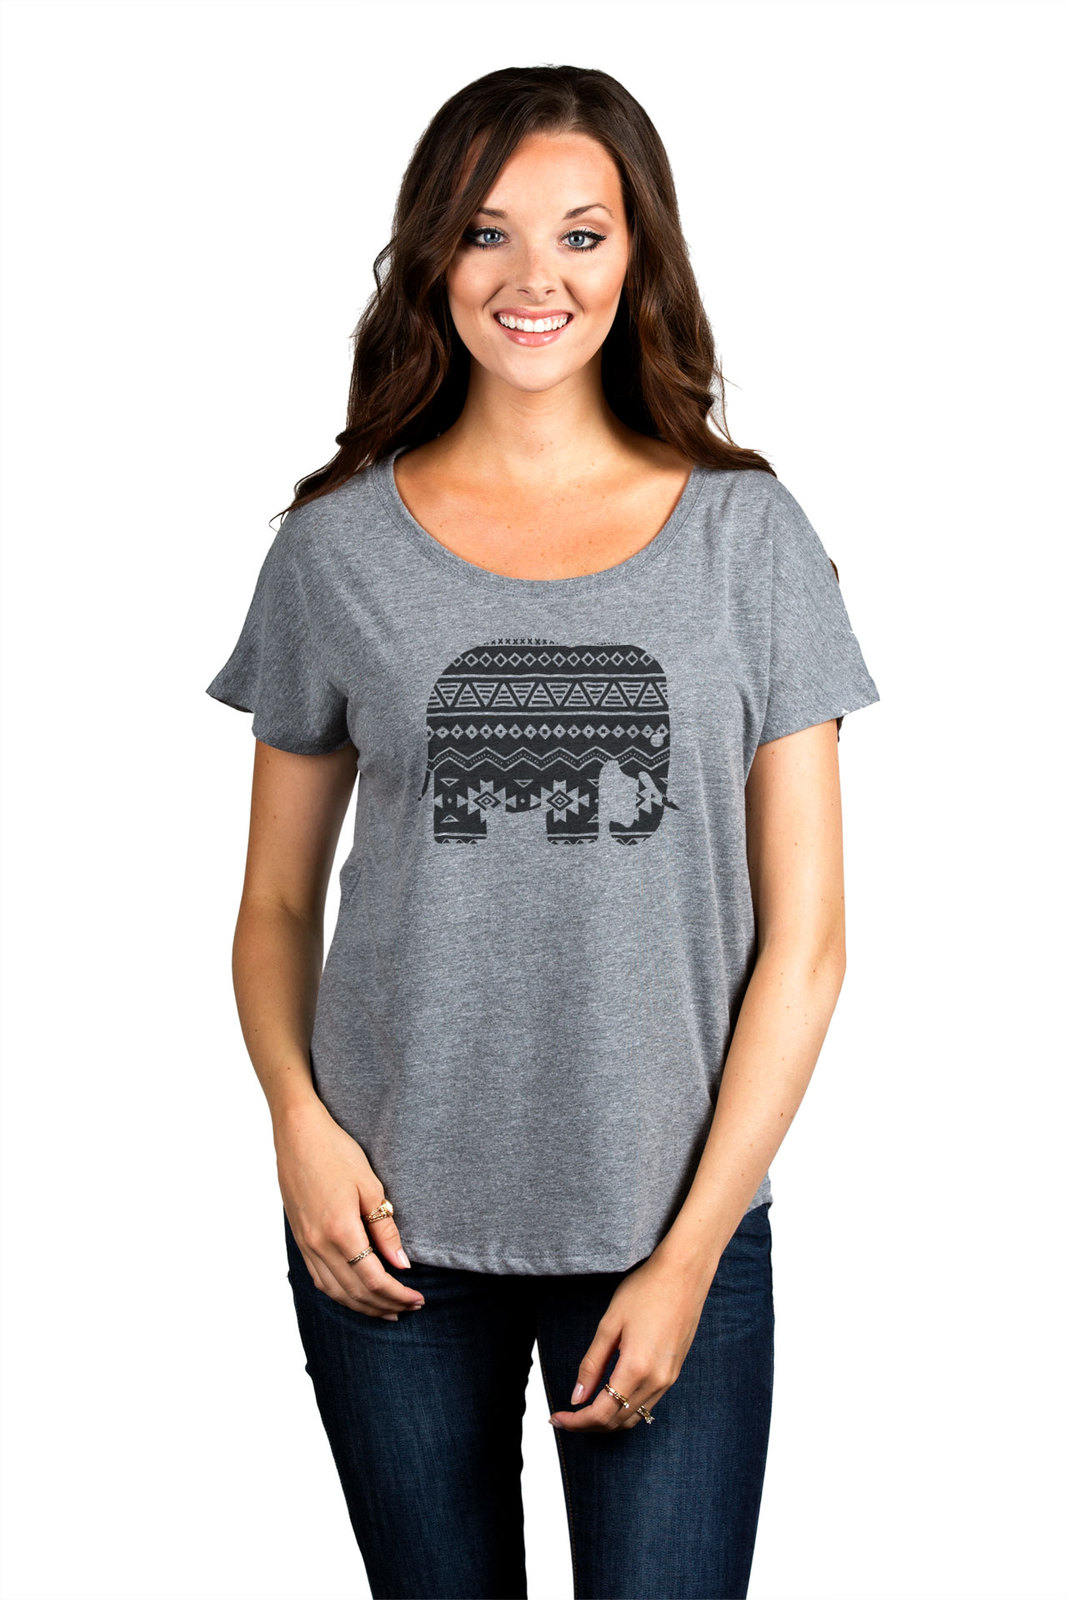 Thread Tank Aztec Tribal Elephant Women's Slouchy Dolman T-Shirt Tee Heather Gre